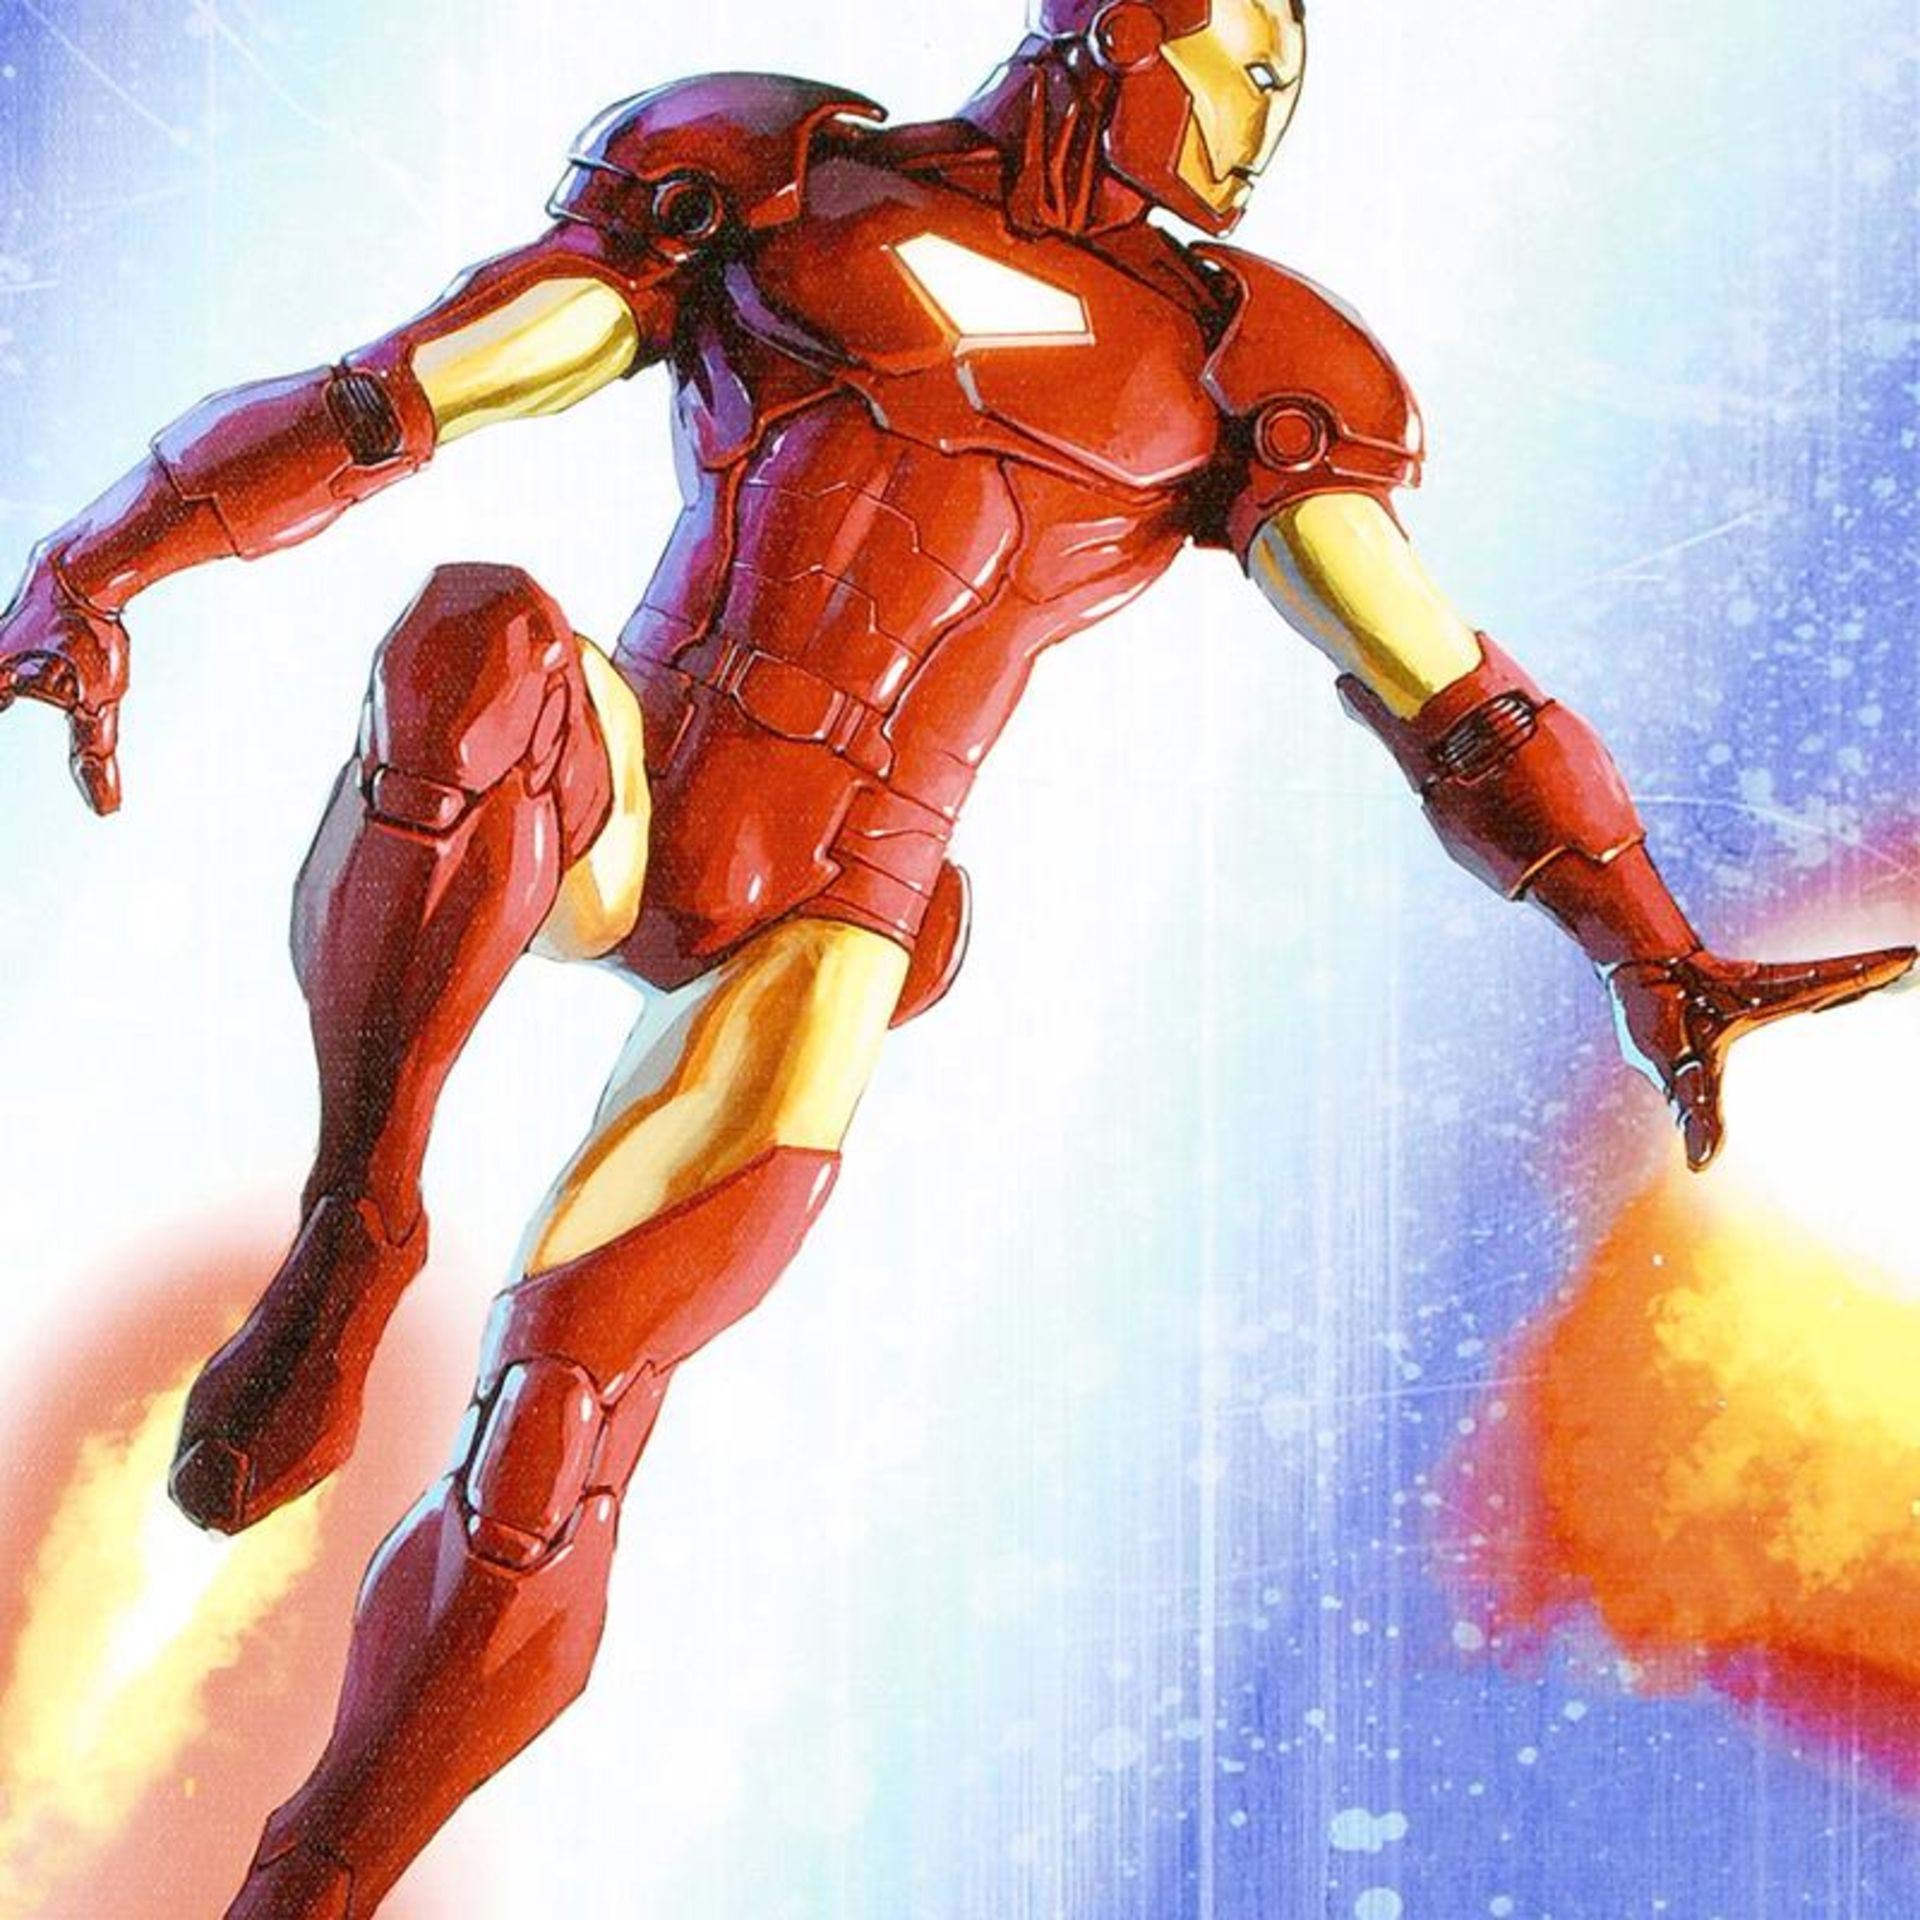 """Stan Lee Signed, """"Iron Man & The Armor Wars #3"""" Numbered Marvel Comics Limited E - Image 2 of 2"""